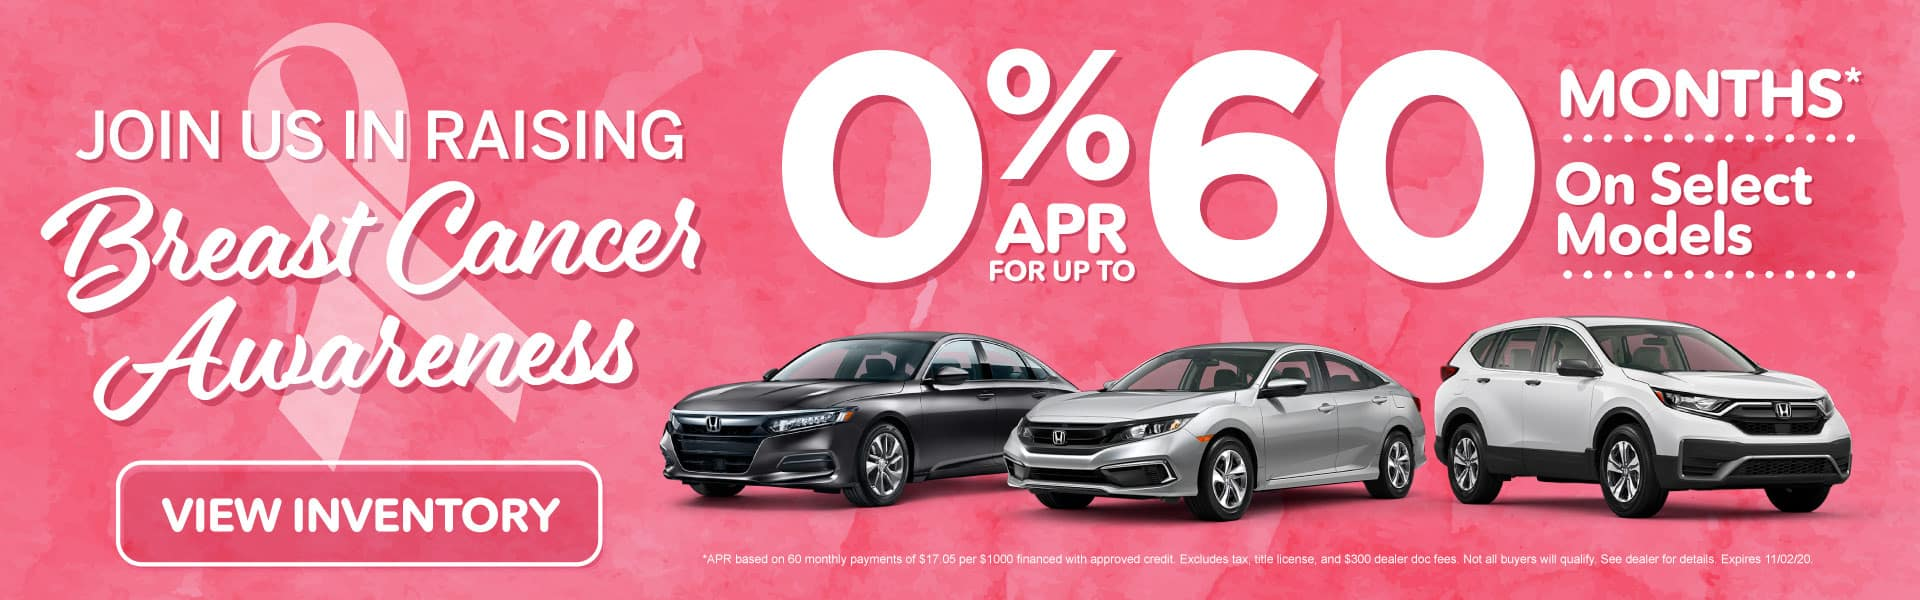 0% APR for up to 60 months on select models | Click to View Inventory